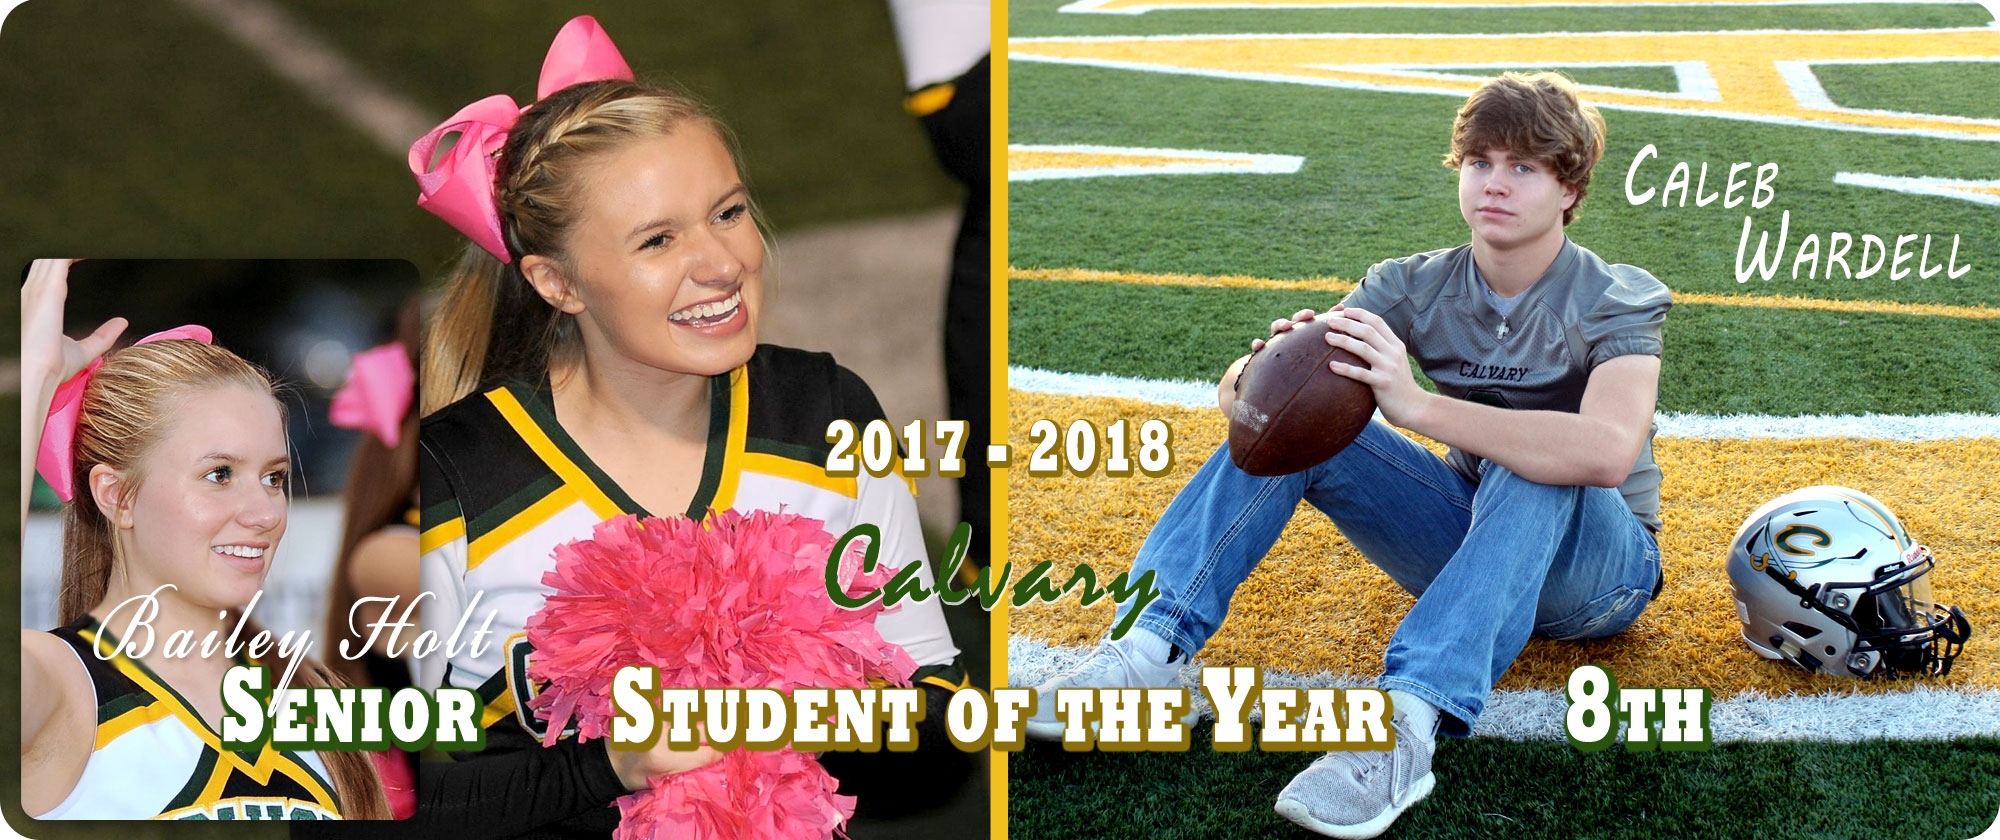 Calvary Student of the Year 2017 - 2018